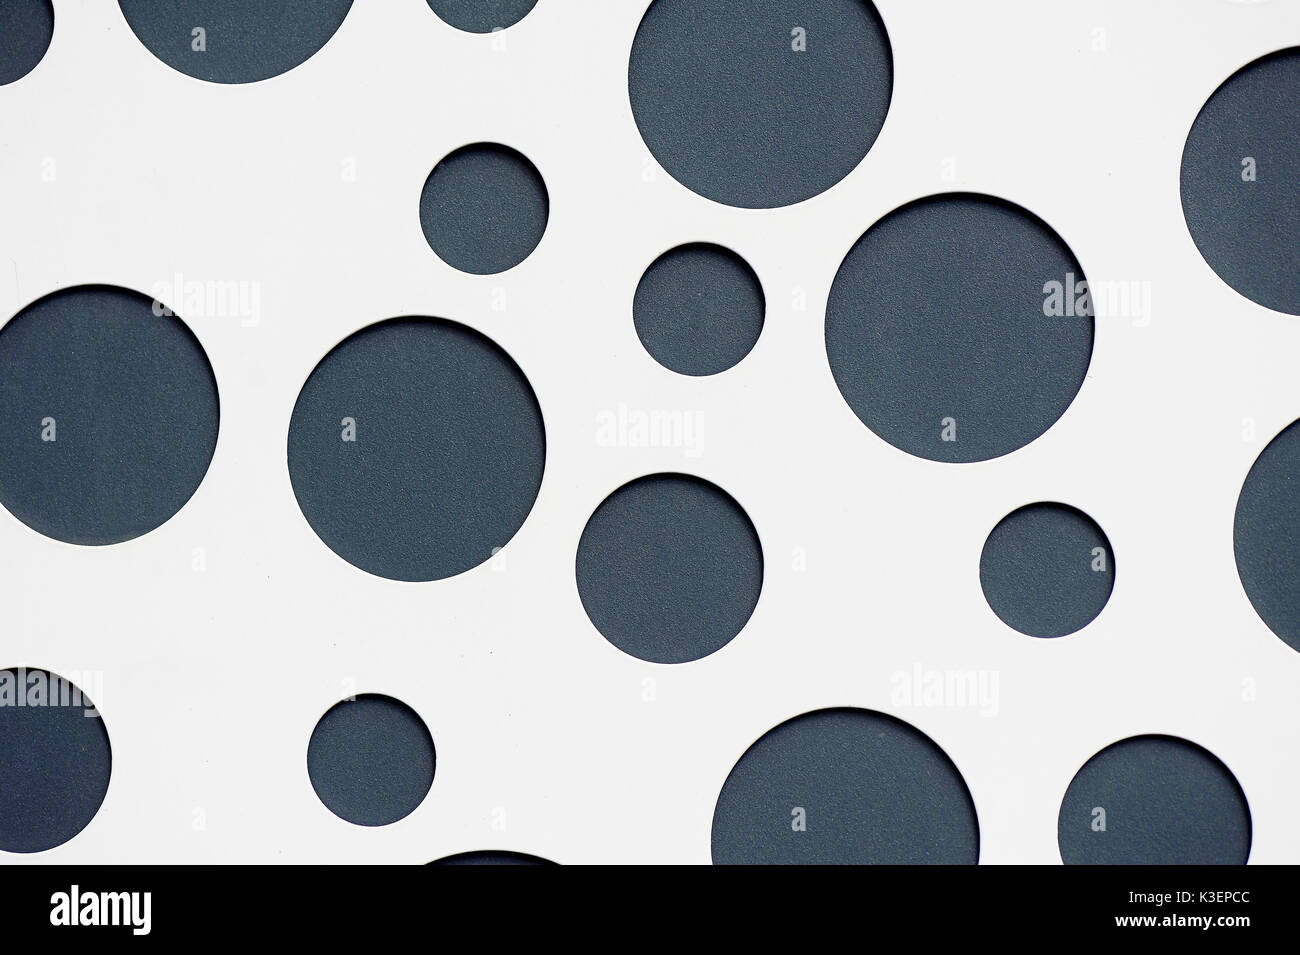 texture gray circles on a white background made of metal. Design,neutral colors - Stock Image